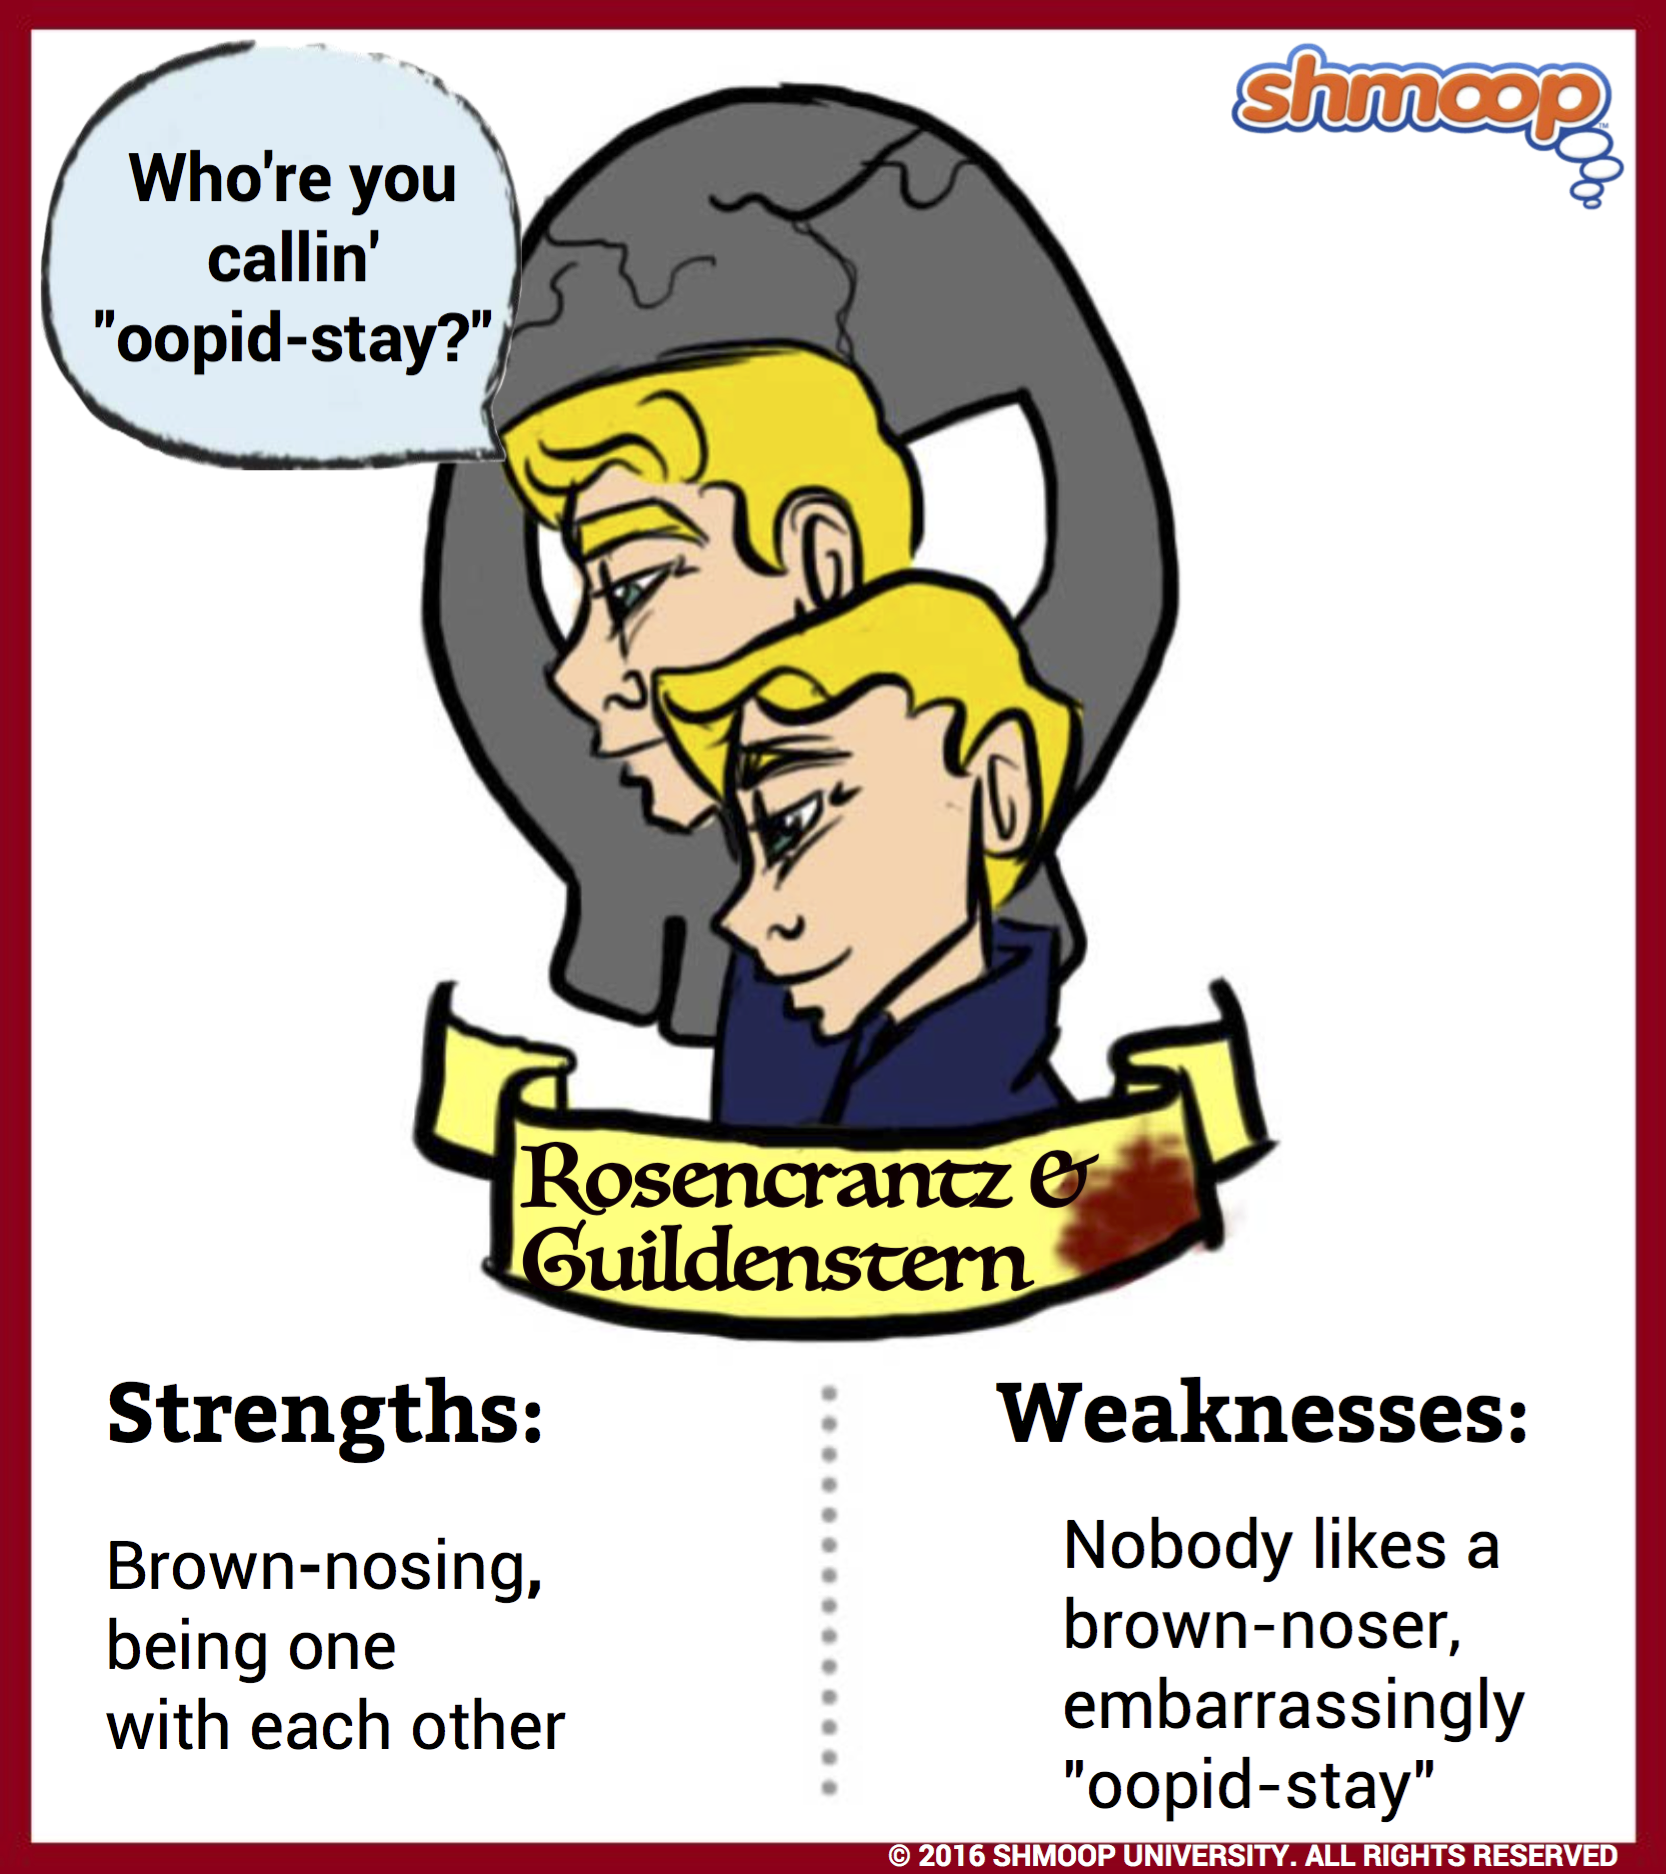 rosencrantz and guildenstern in hamlet character analysis